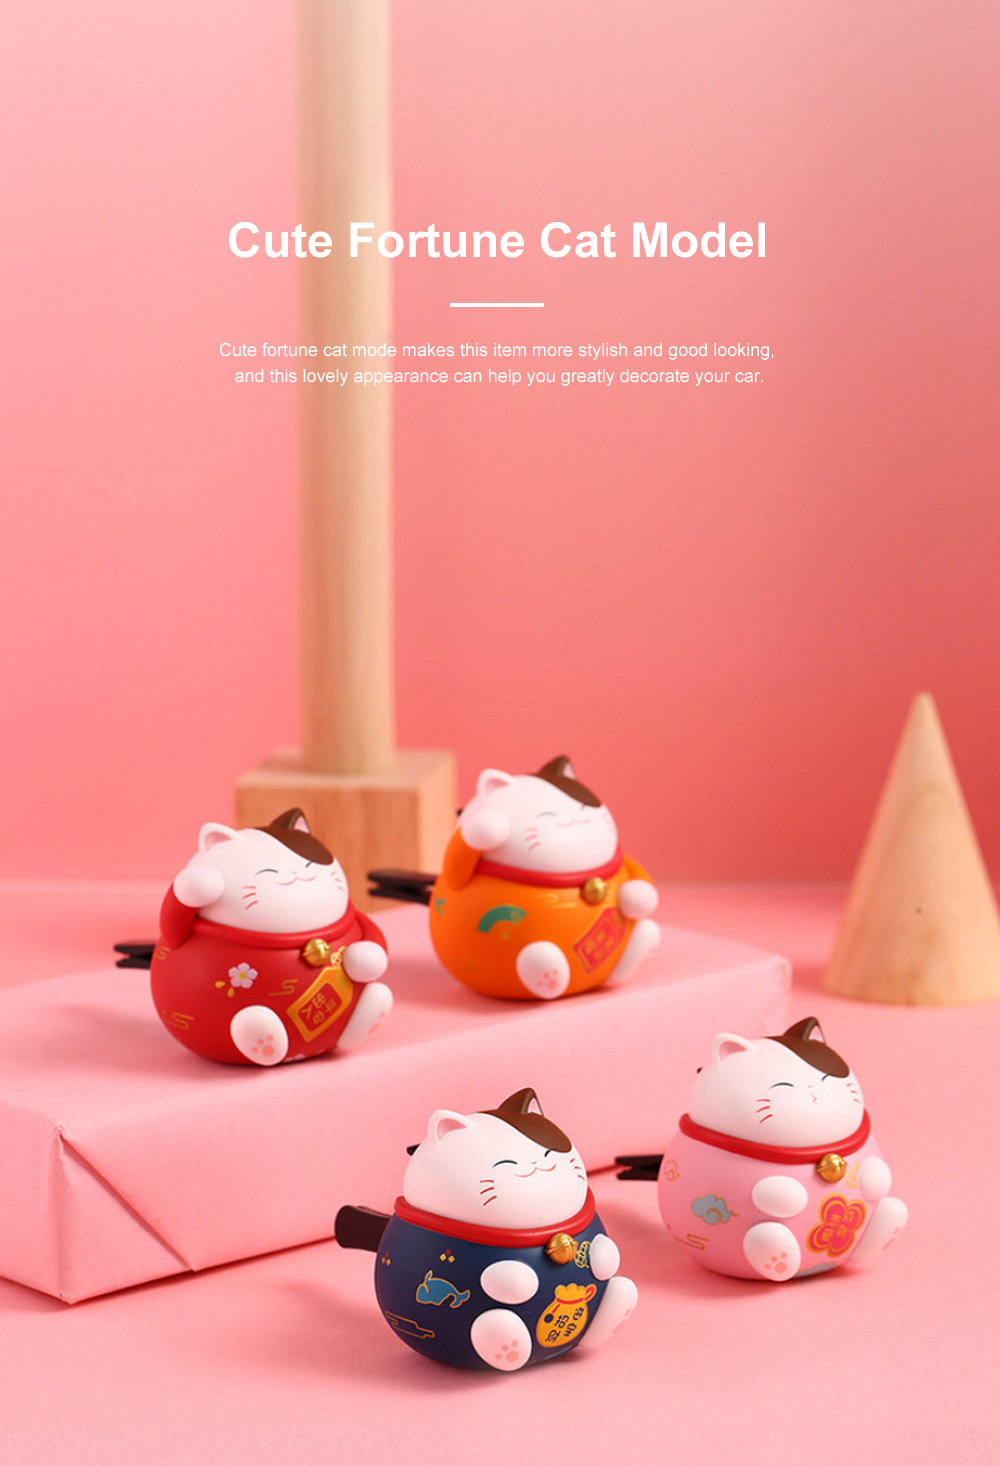 Cute Caron Fortune Cat Model Enduring Light Fragrance Car Perfume Aromatherapy Solid Perfume Ornament 5